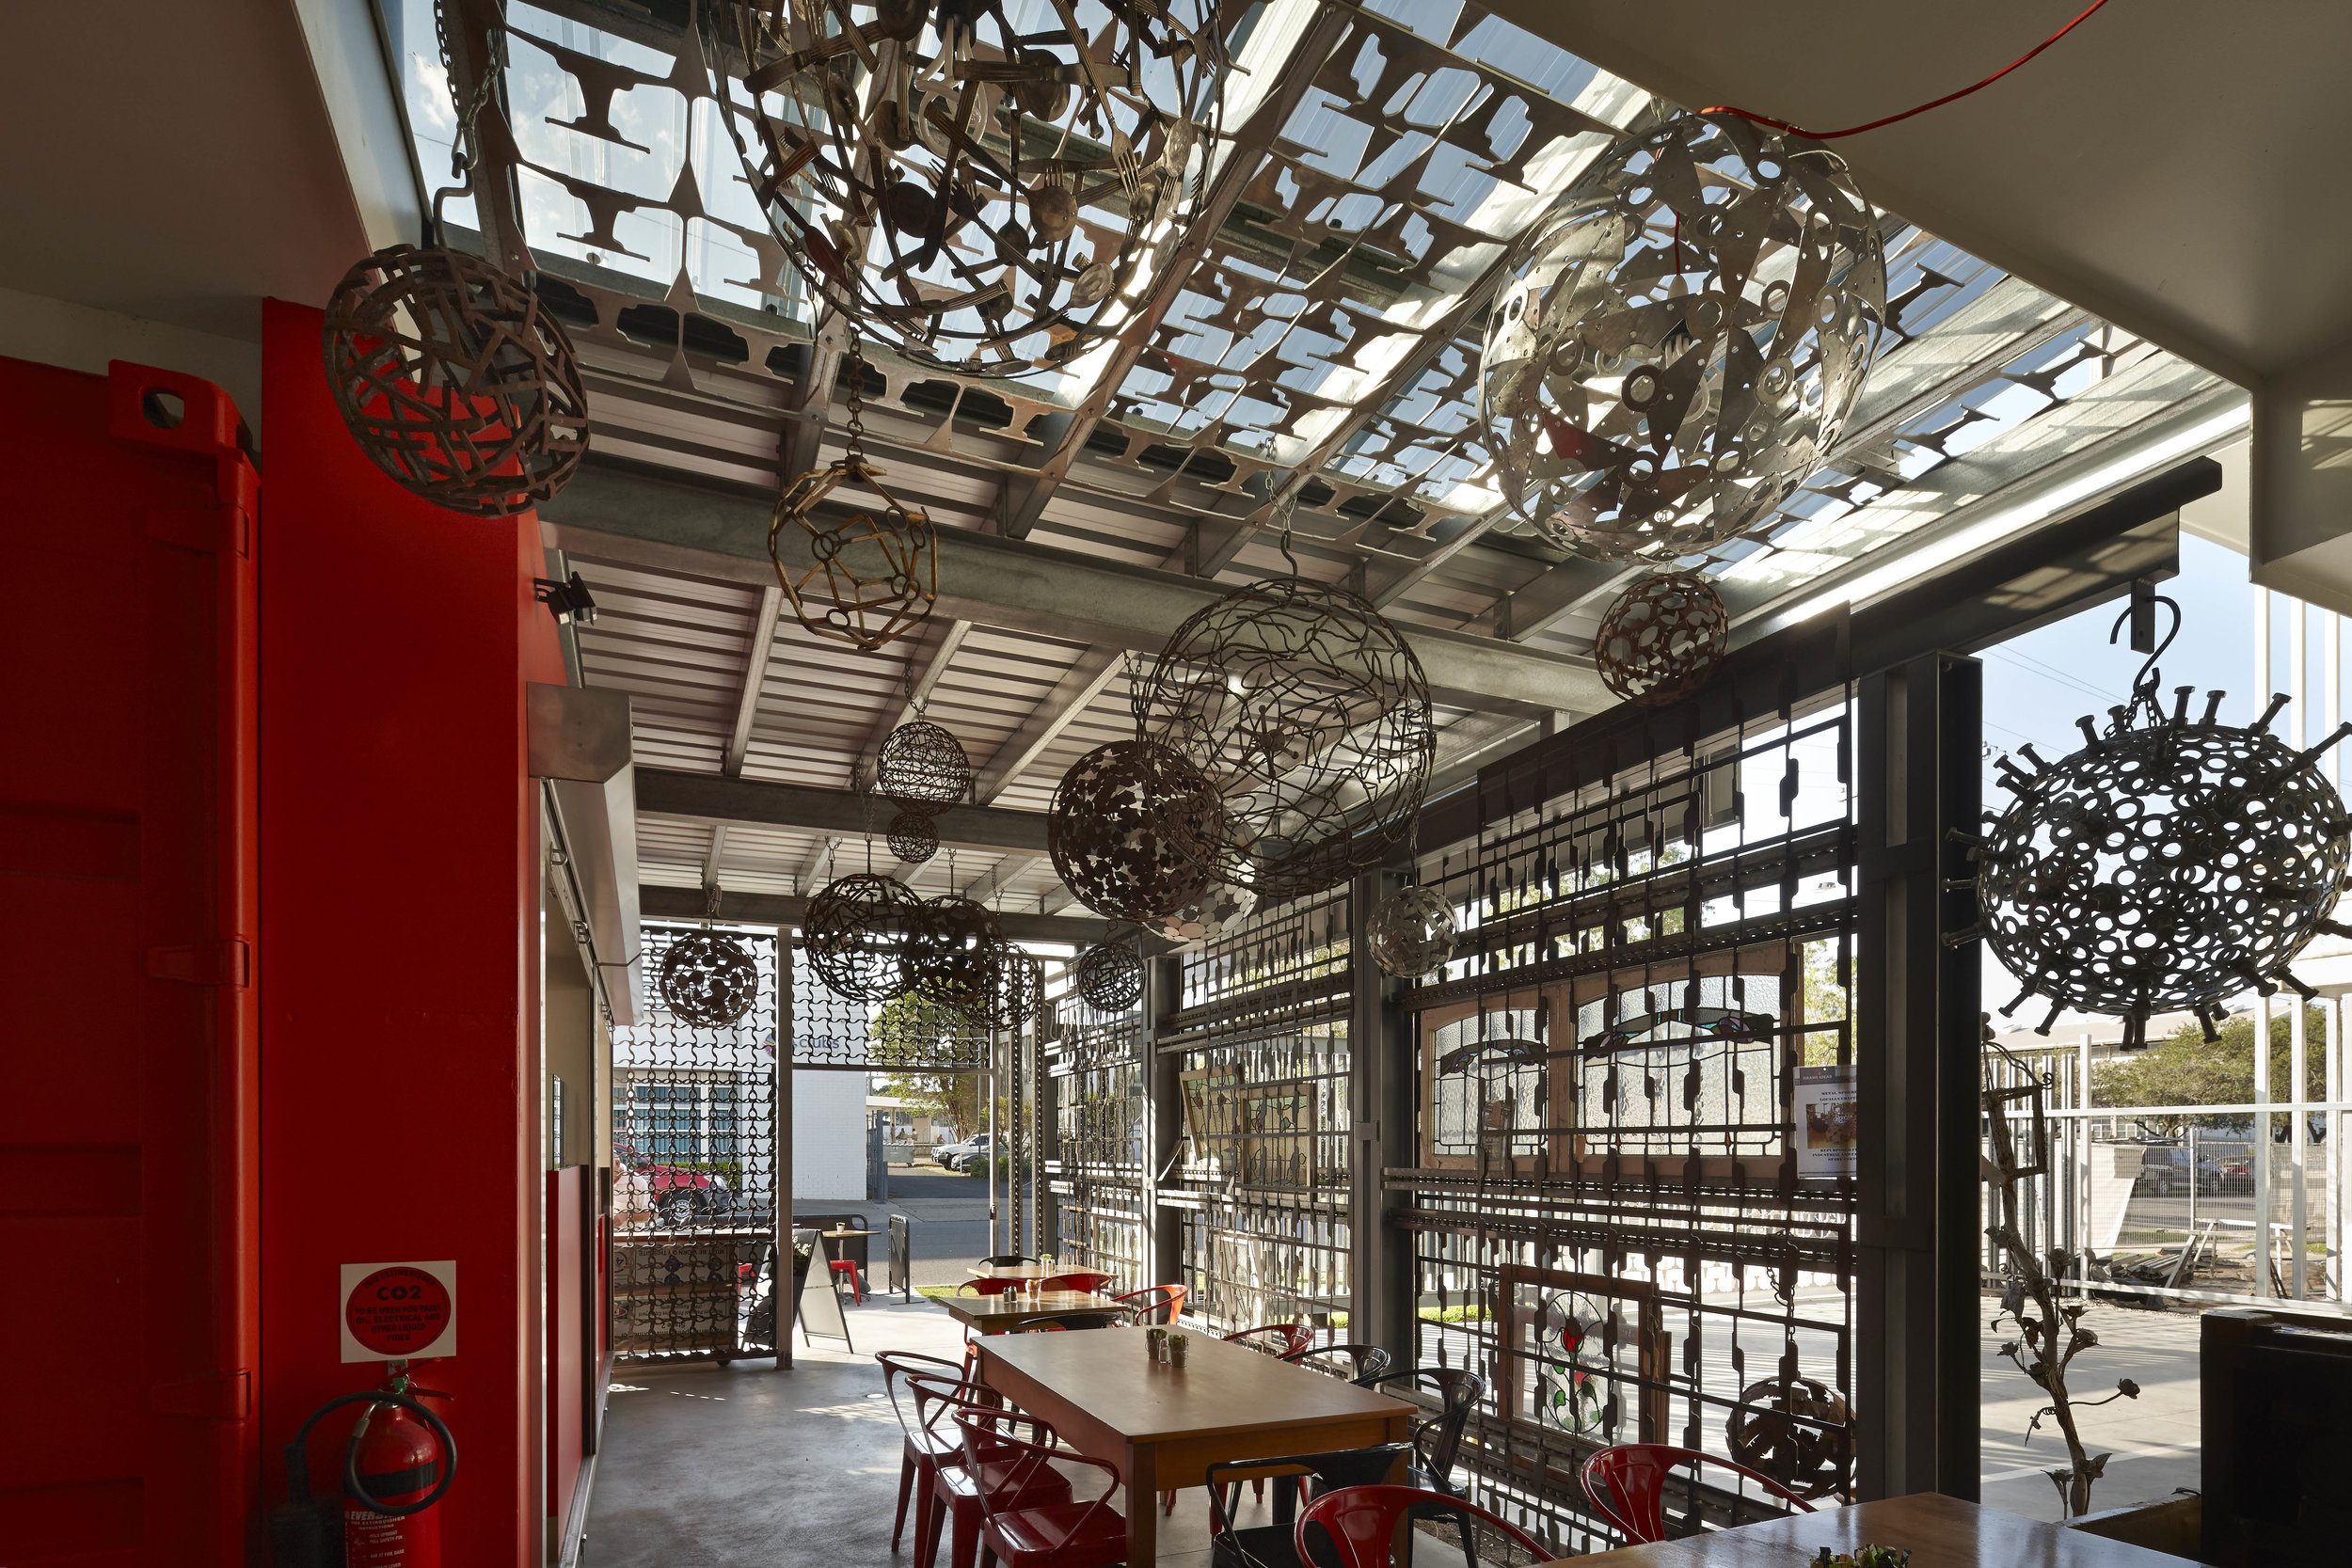 Guymer-bailey-architects-Grand-Ideas-cafe-commercial-06.jpg